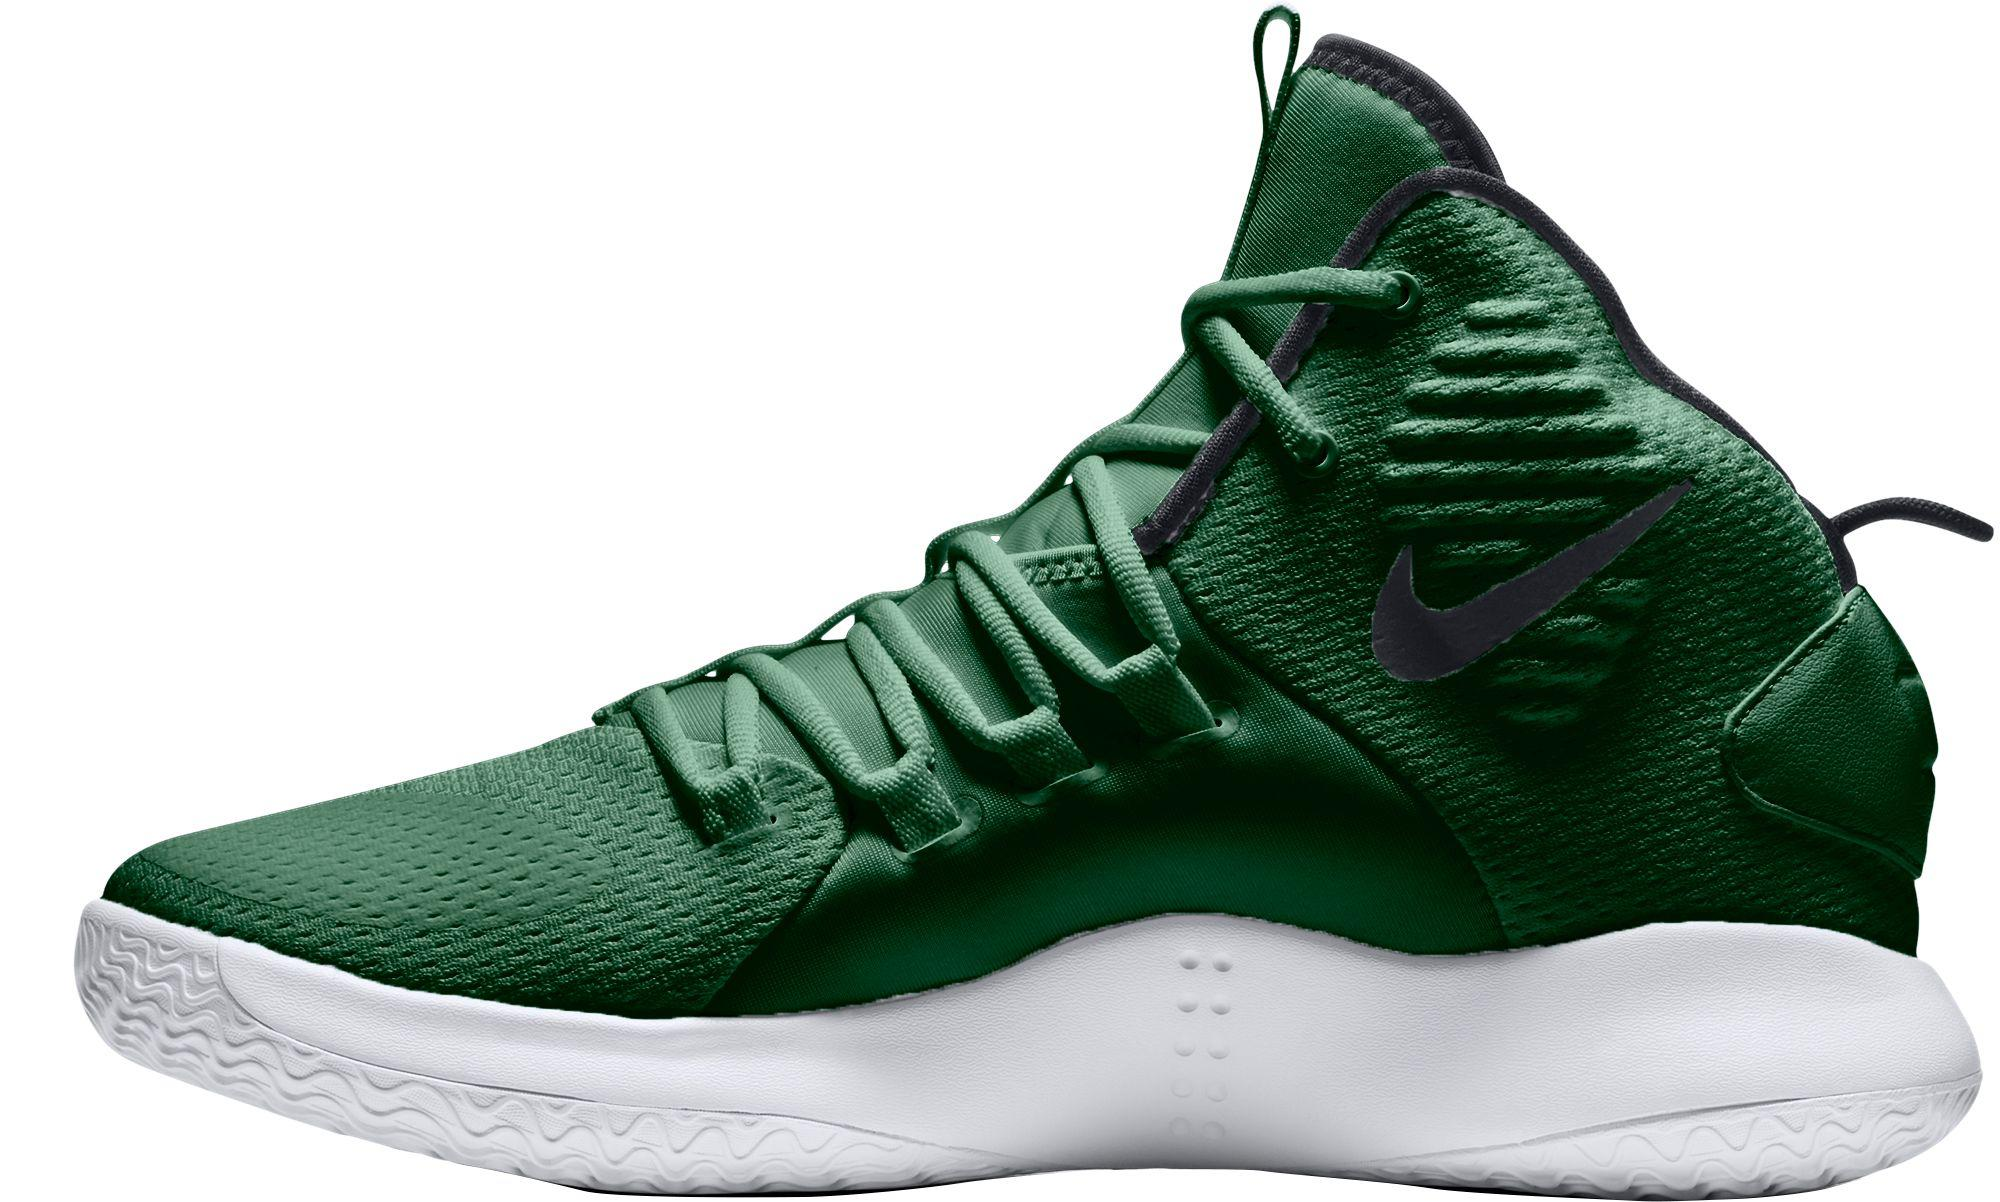 64d640fef884 Nike Hyperdunk X Mid Tb Basketball Shoes in Green for Men - Lyst